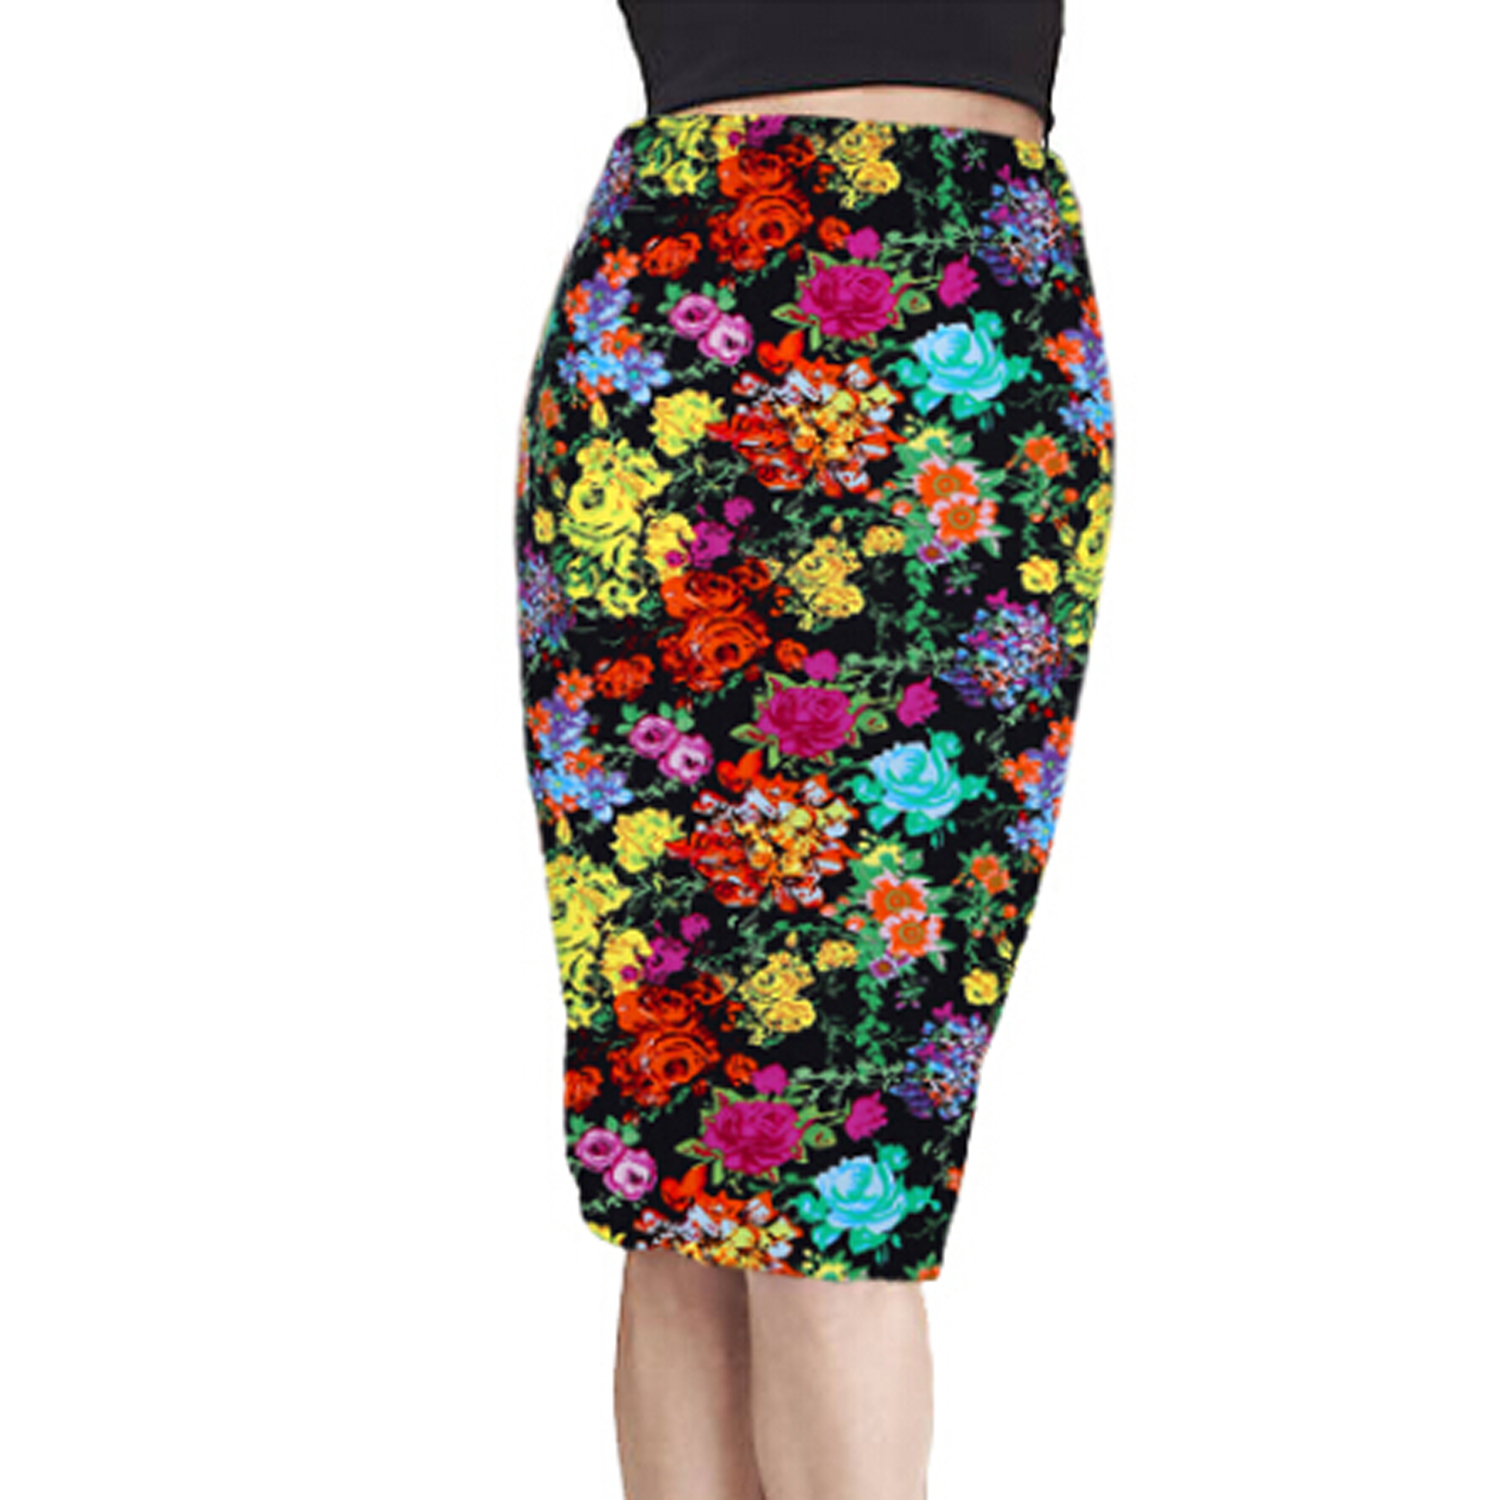 2017 Spring Summer Vintage Fashion Printed Pencil Skirt Midi Women Elastic  High Waist Ladies Pattern Skirts-in Skirts from Women s Clothing on ... cffdcfef0